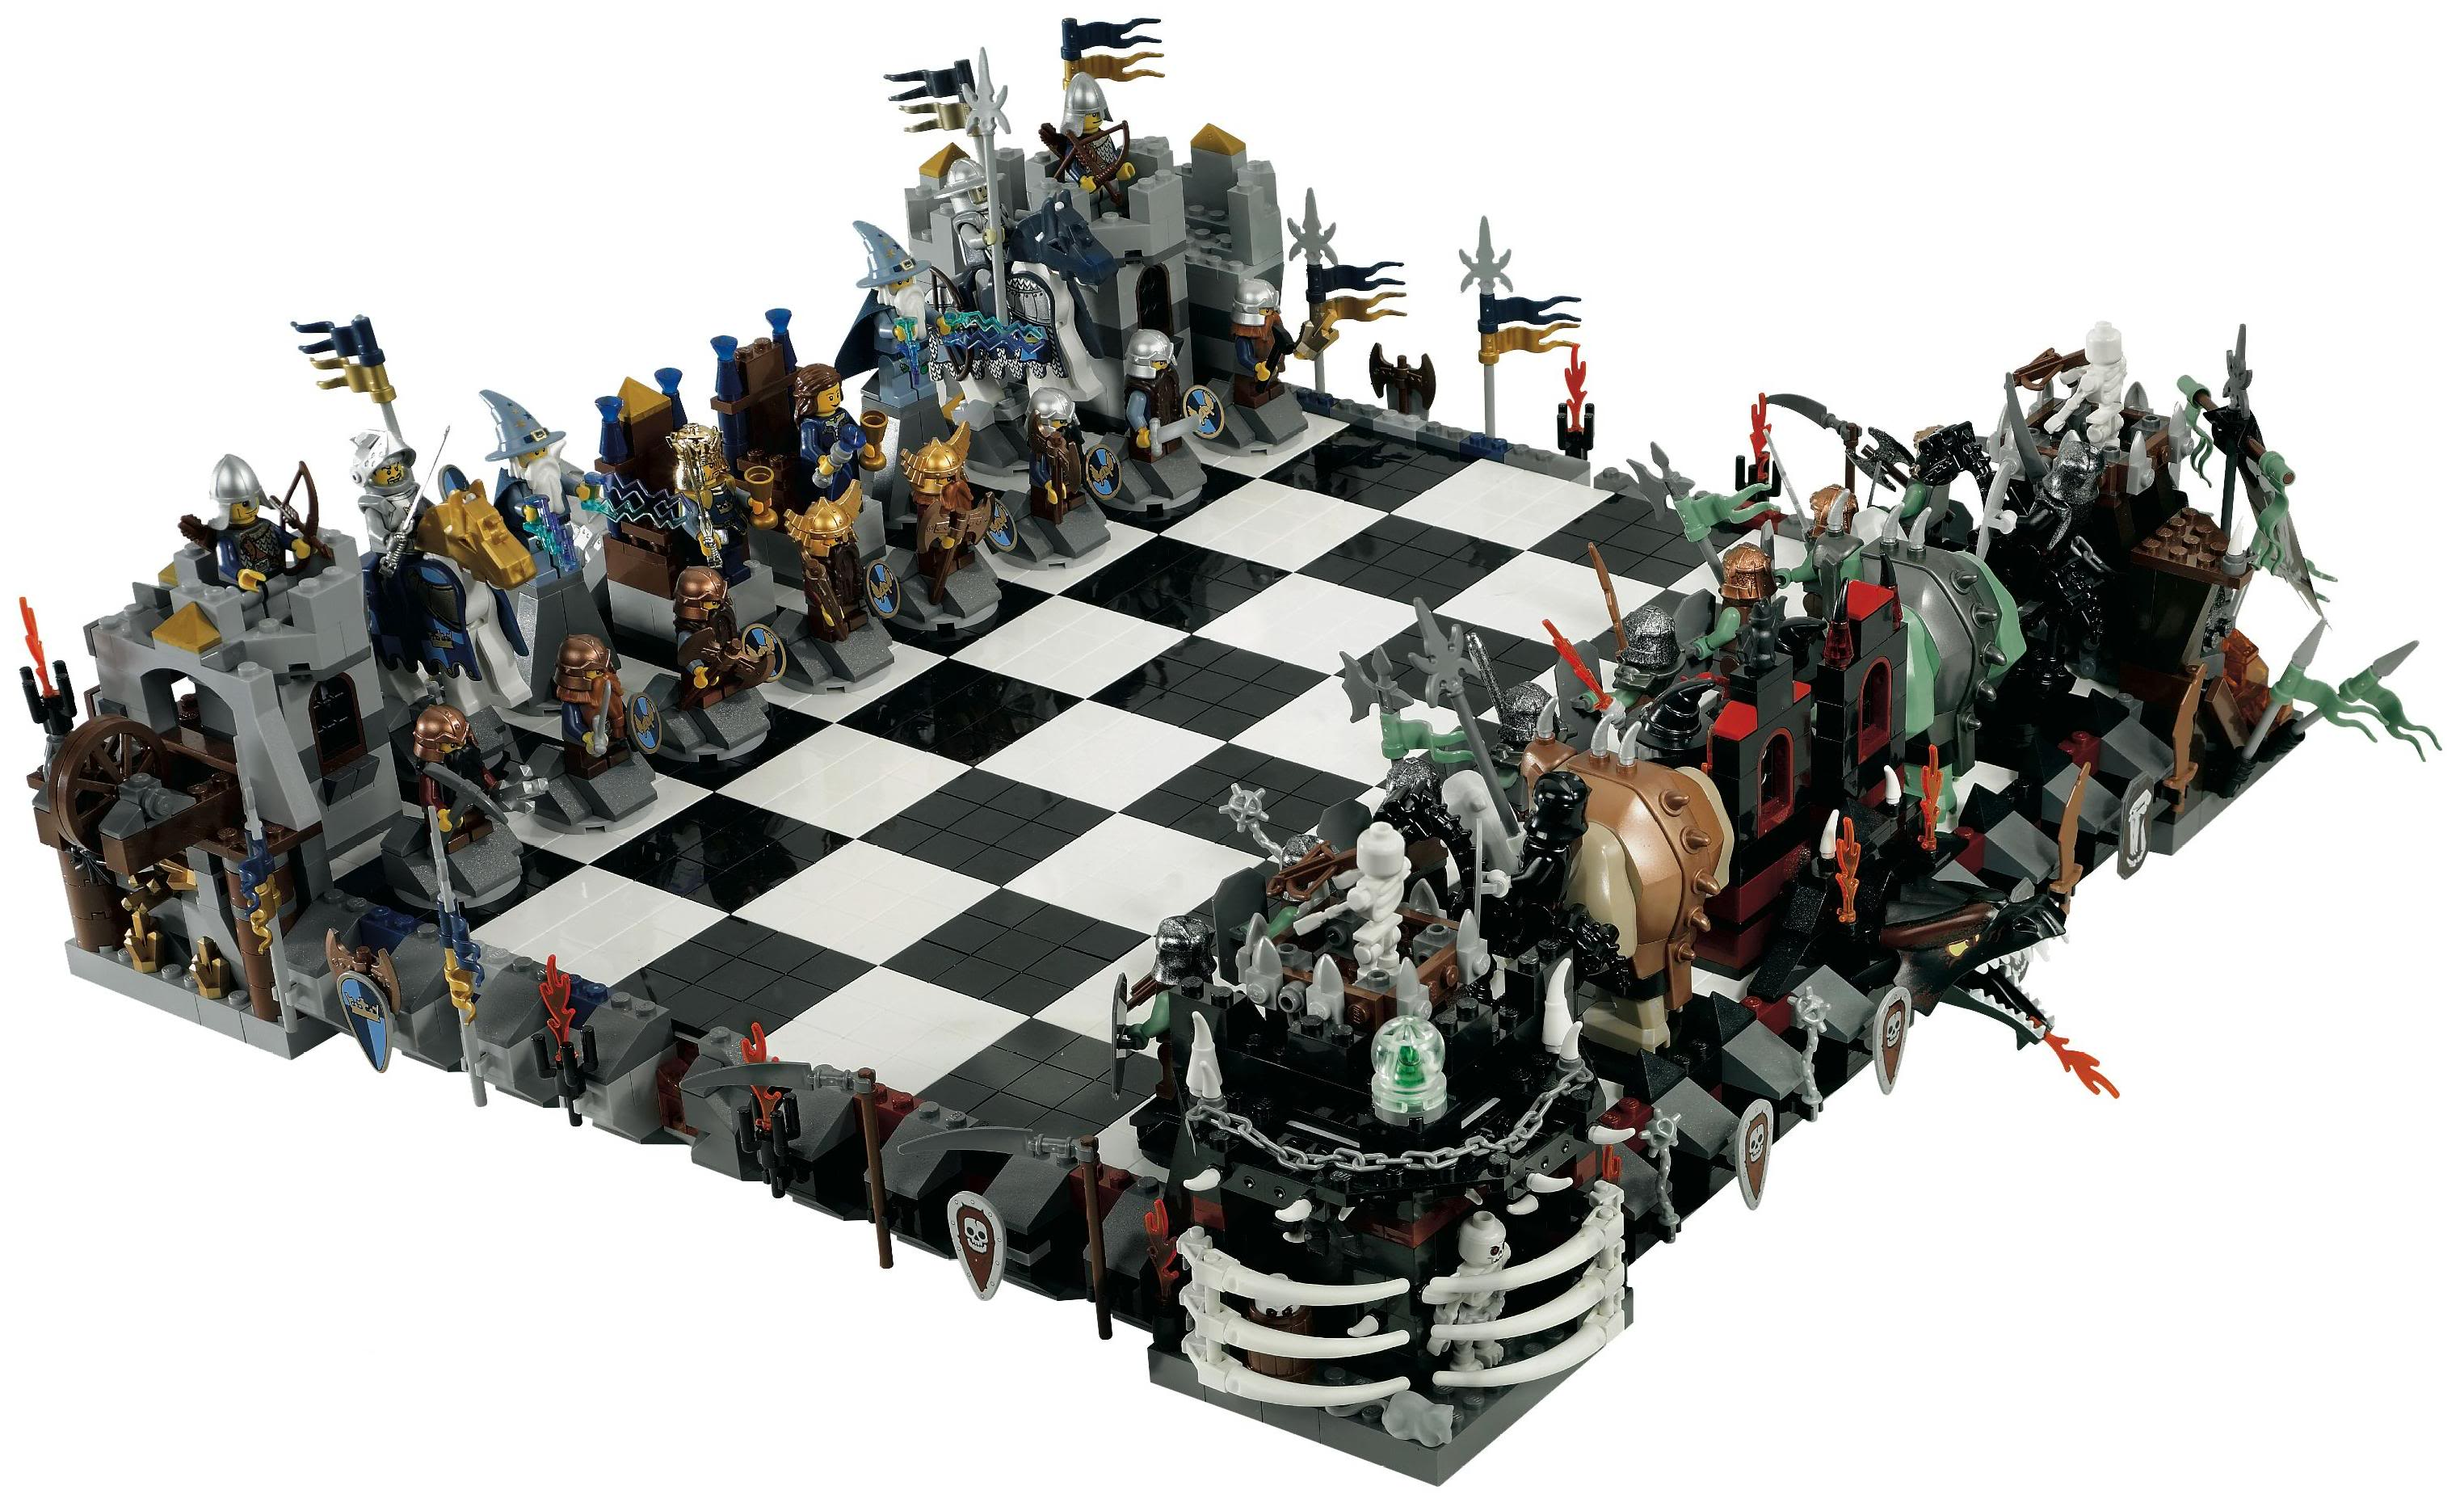 Chest Game Set 10 Cool Chess Sets Inspired From Movies And Games